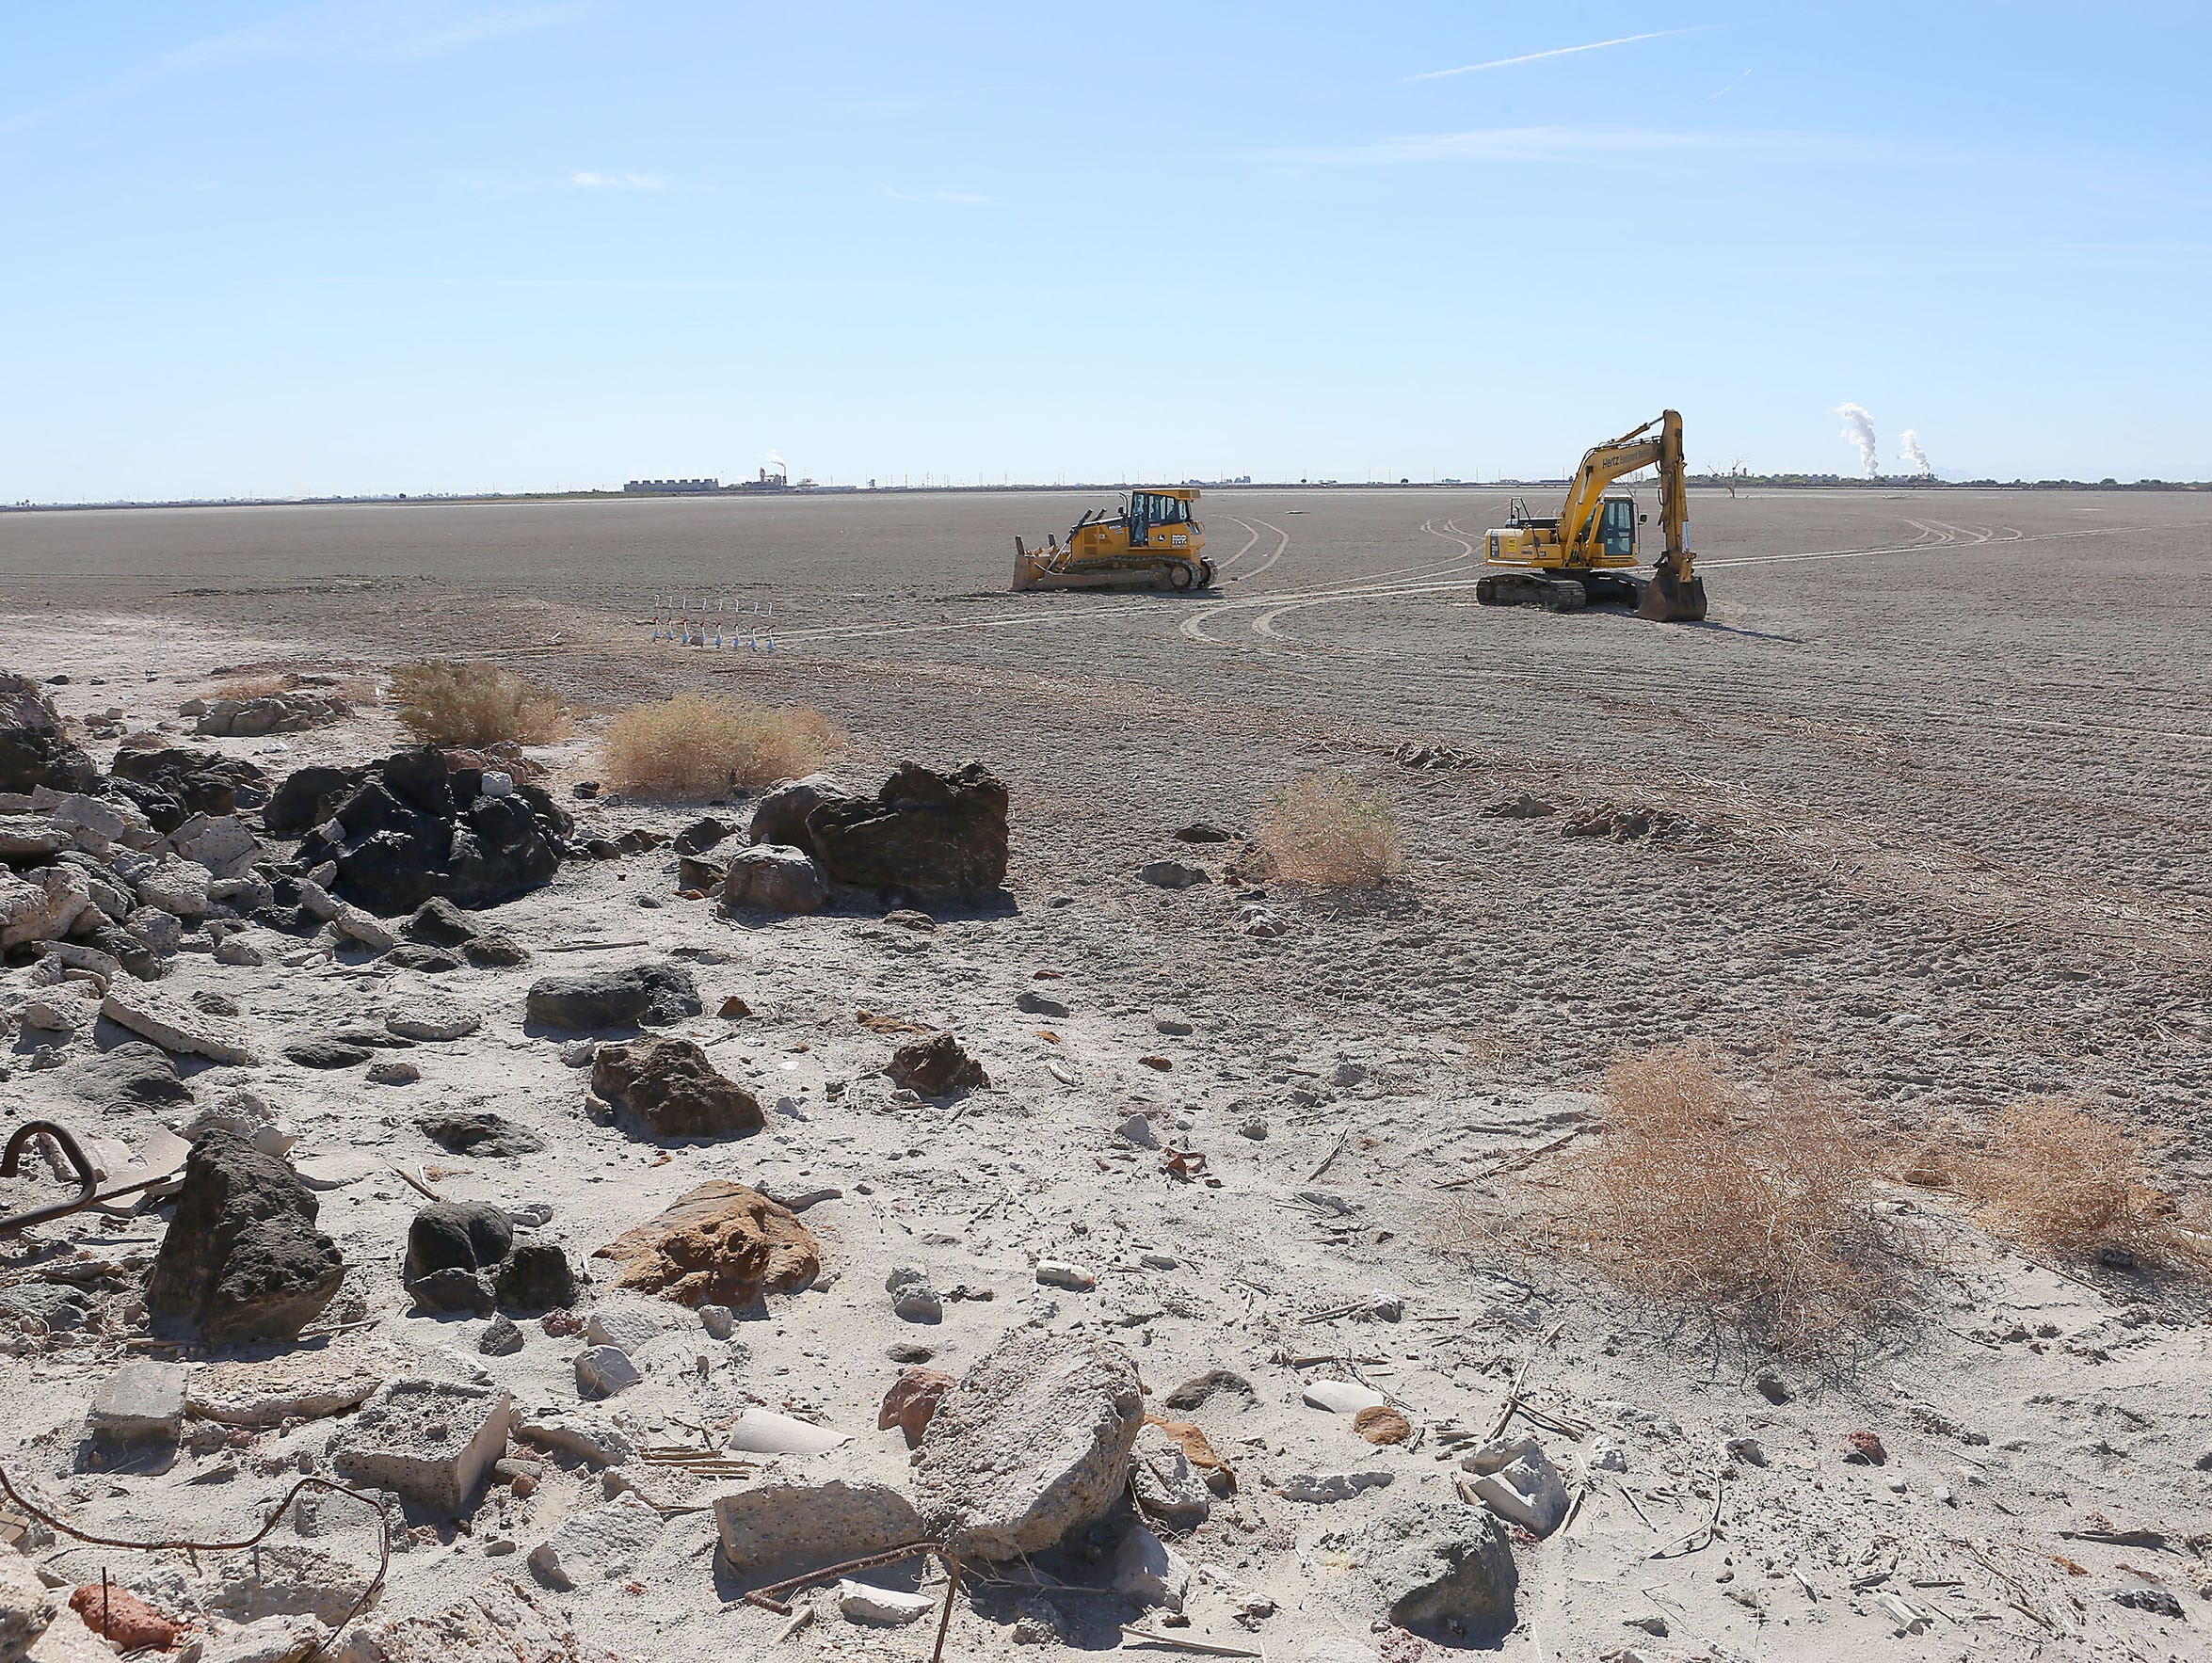 The Red Hill Bay restoration project — seen as work